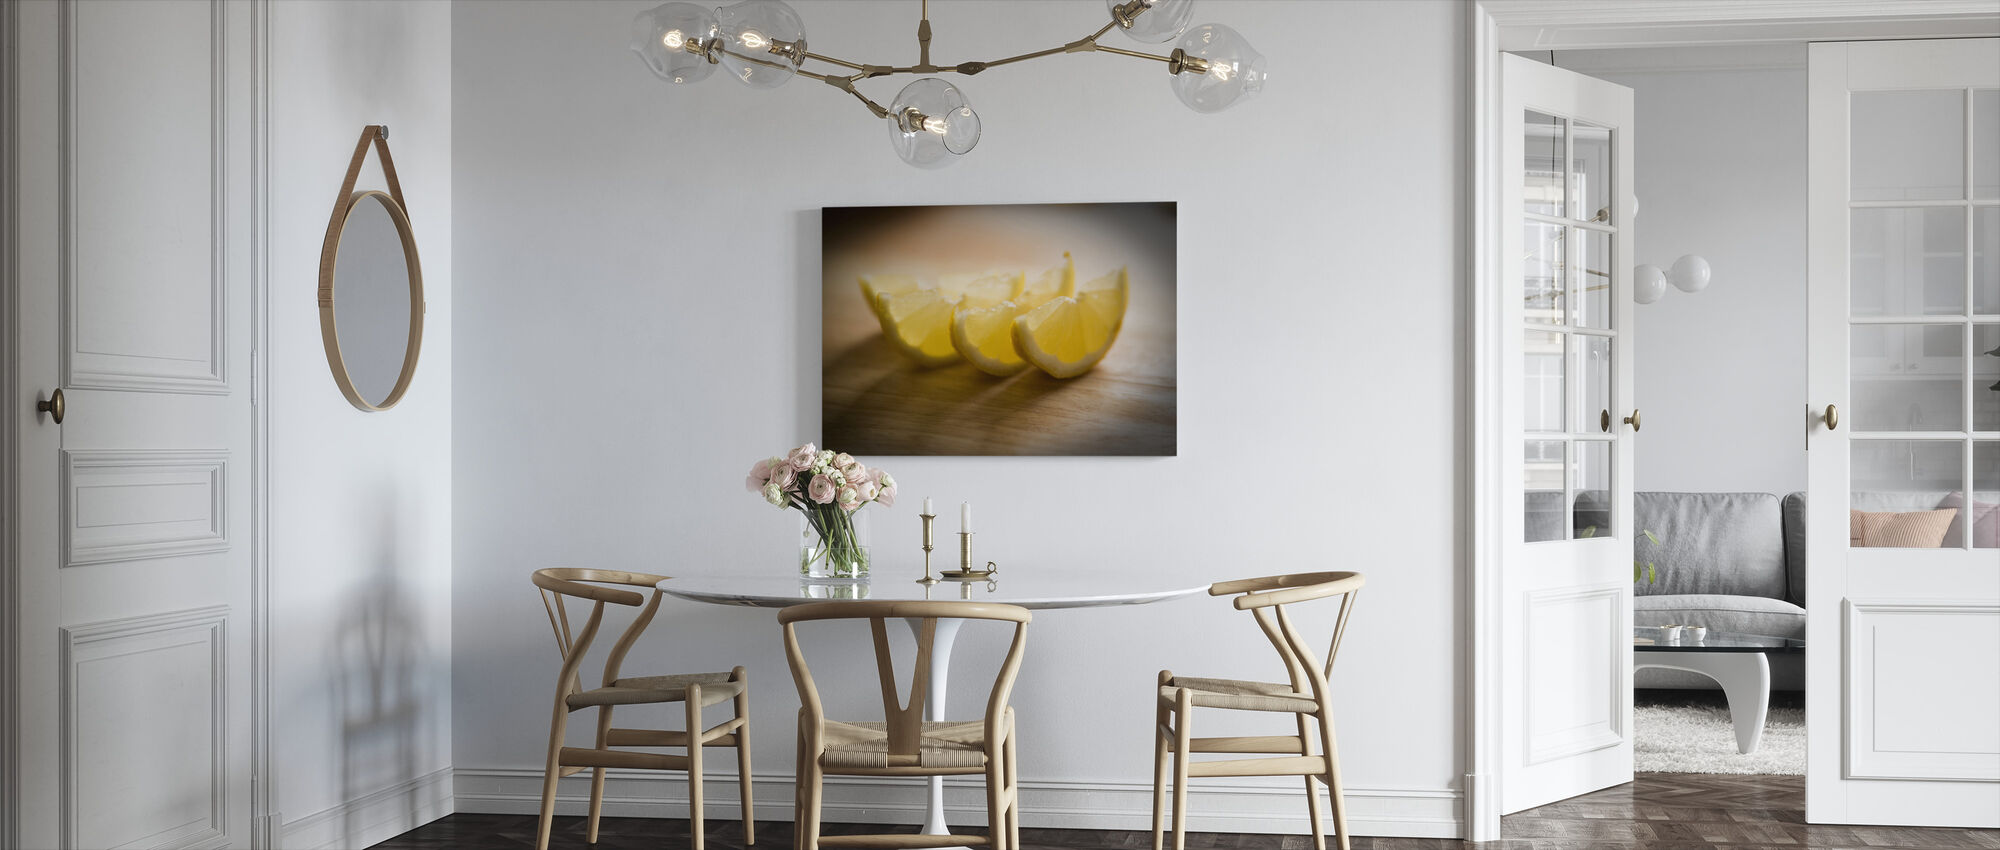 Freshly Sliced Lemon - Jesús Sierra - Canvas print - Kitchen